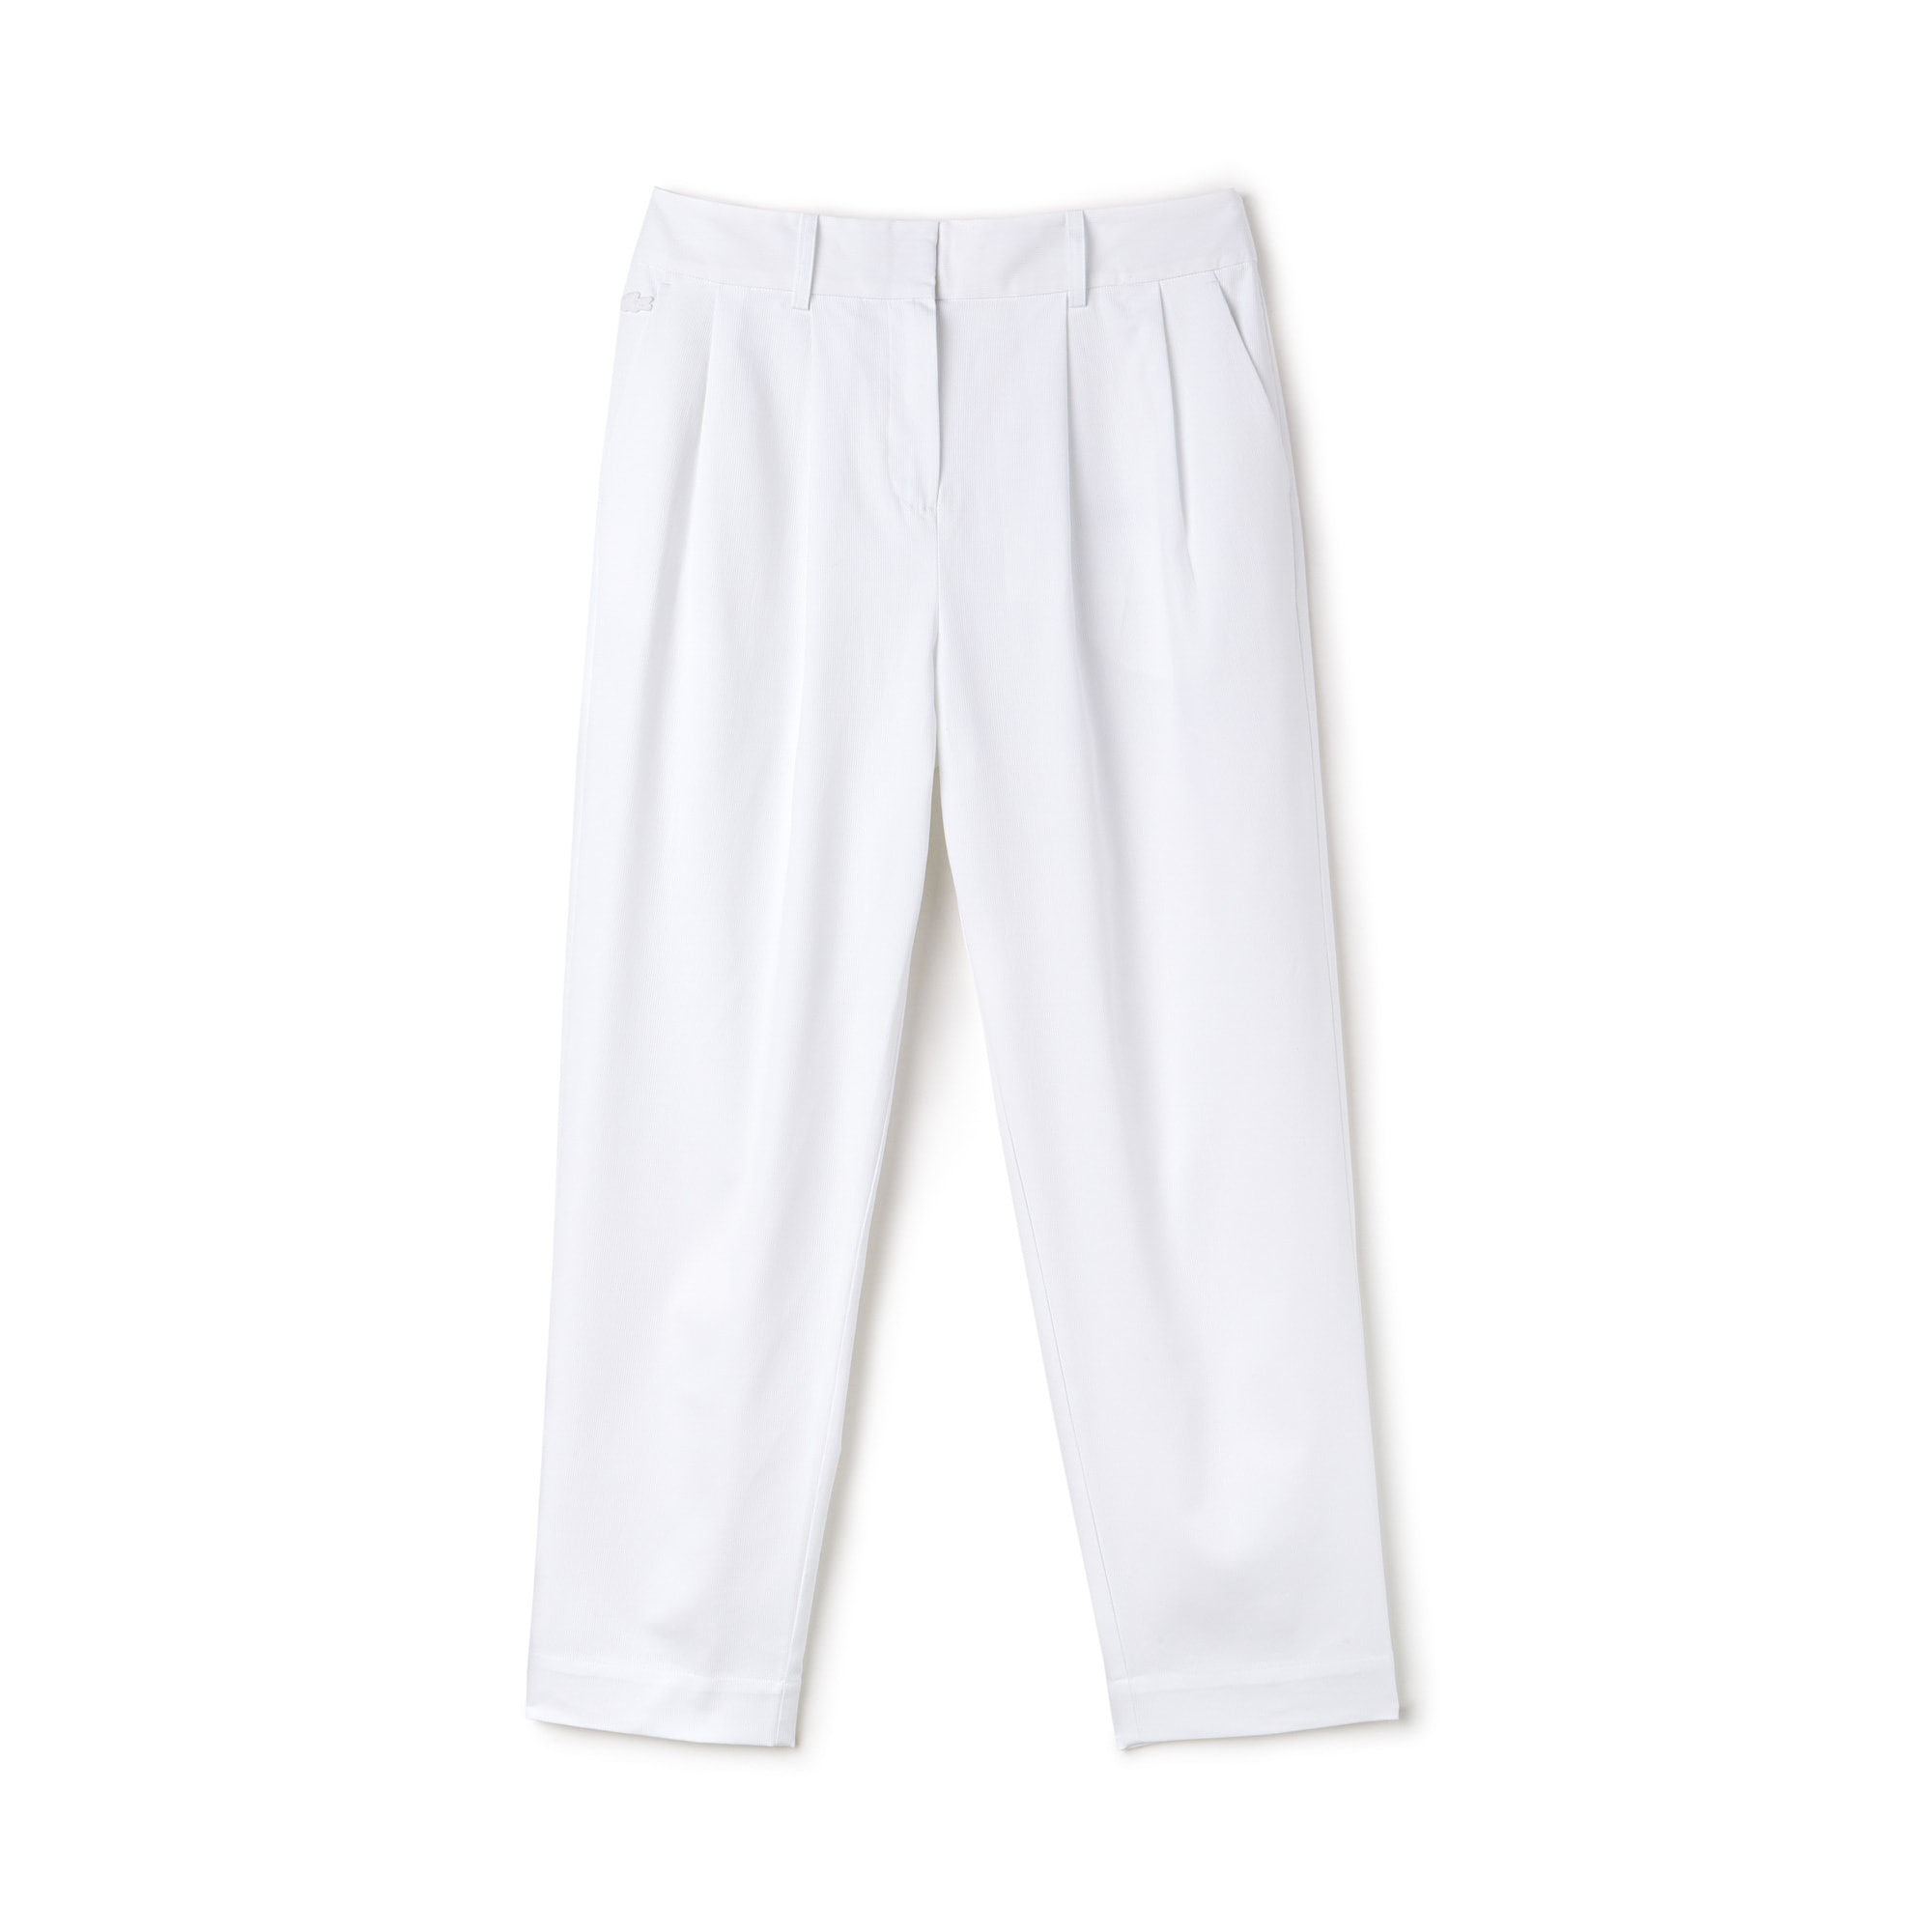 Women's Cotton Pleated Carrot Pants